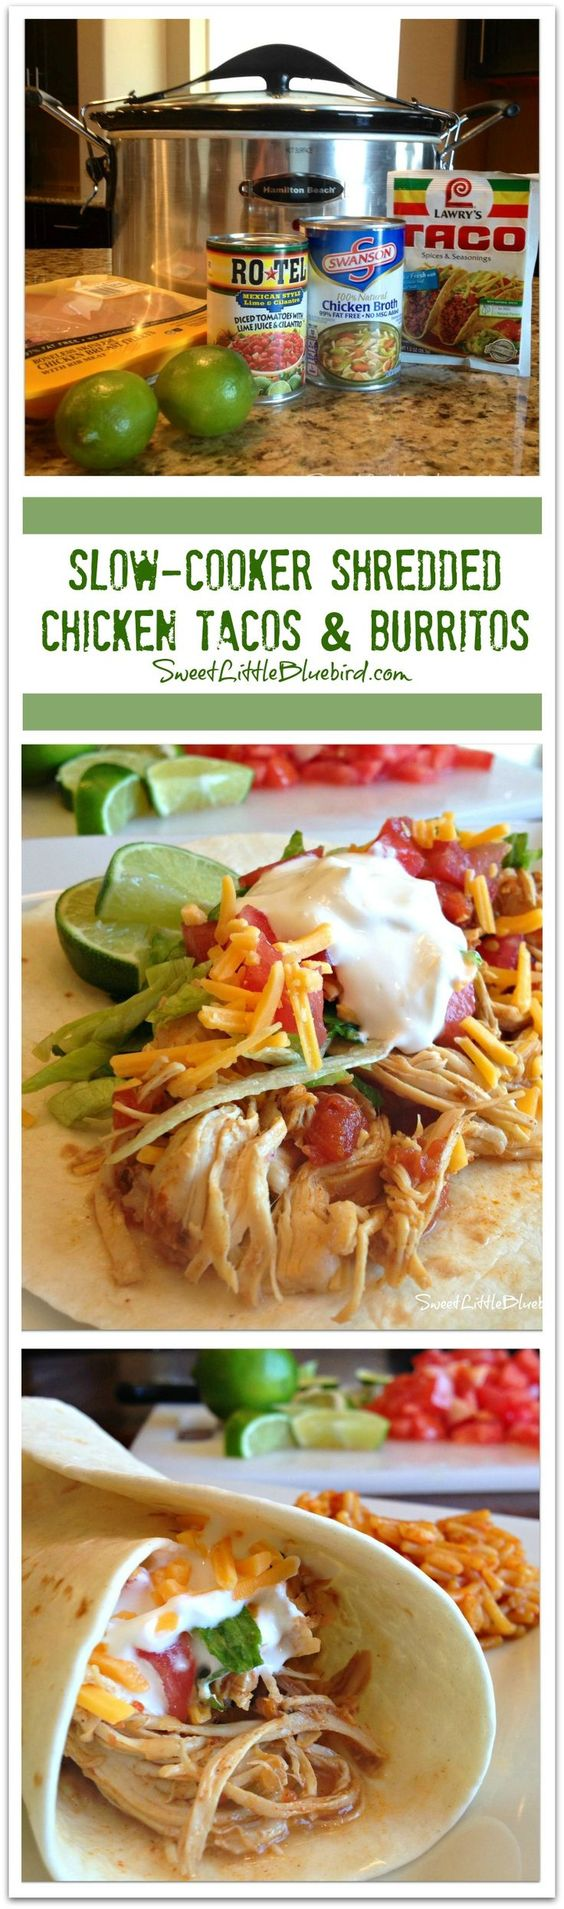 SLOW-COOKER SHREDDED CHICKEN TACOS AND BURRITOS - Just a few ingredients to make, so simple, so good. The only way I make chicken tacos and burritos!!